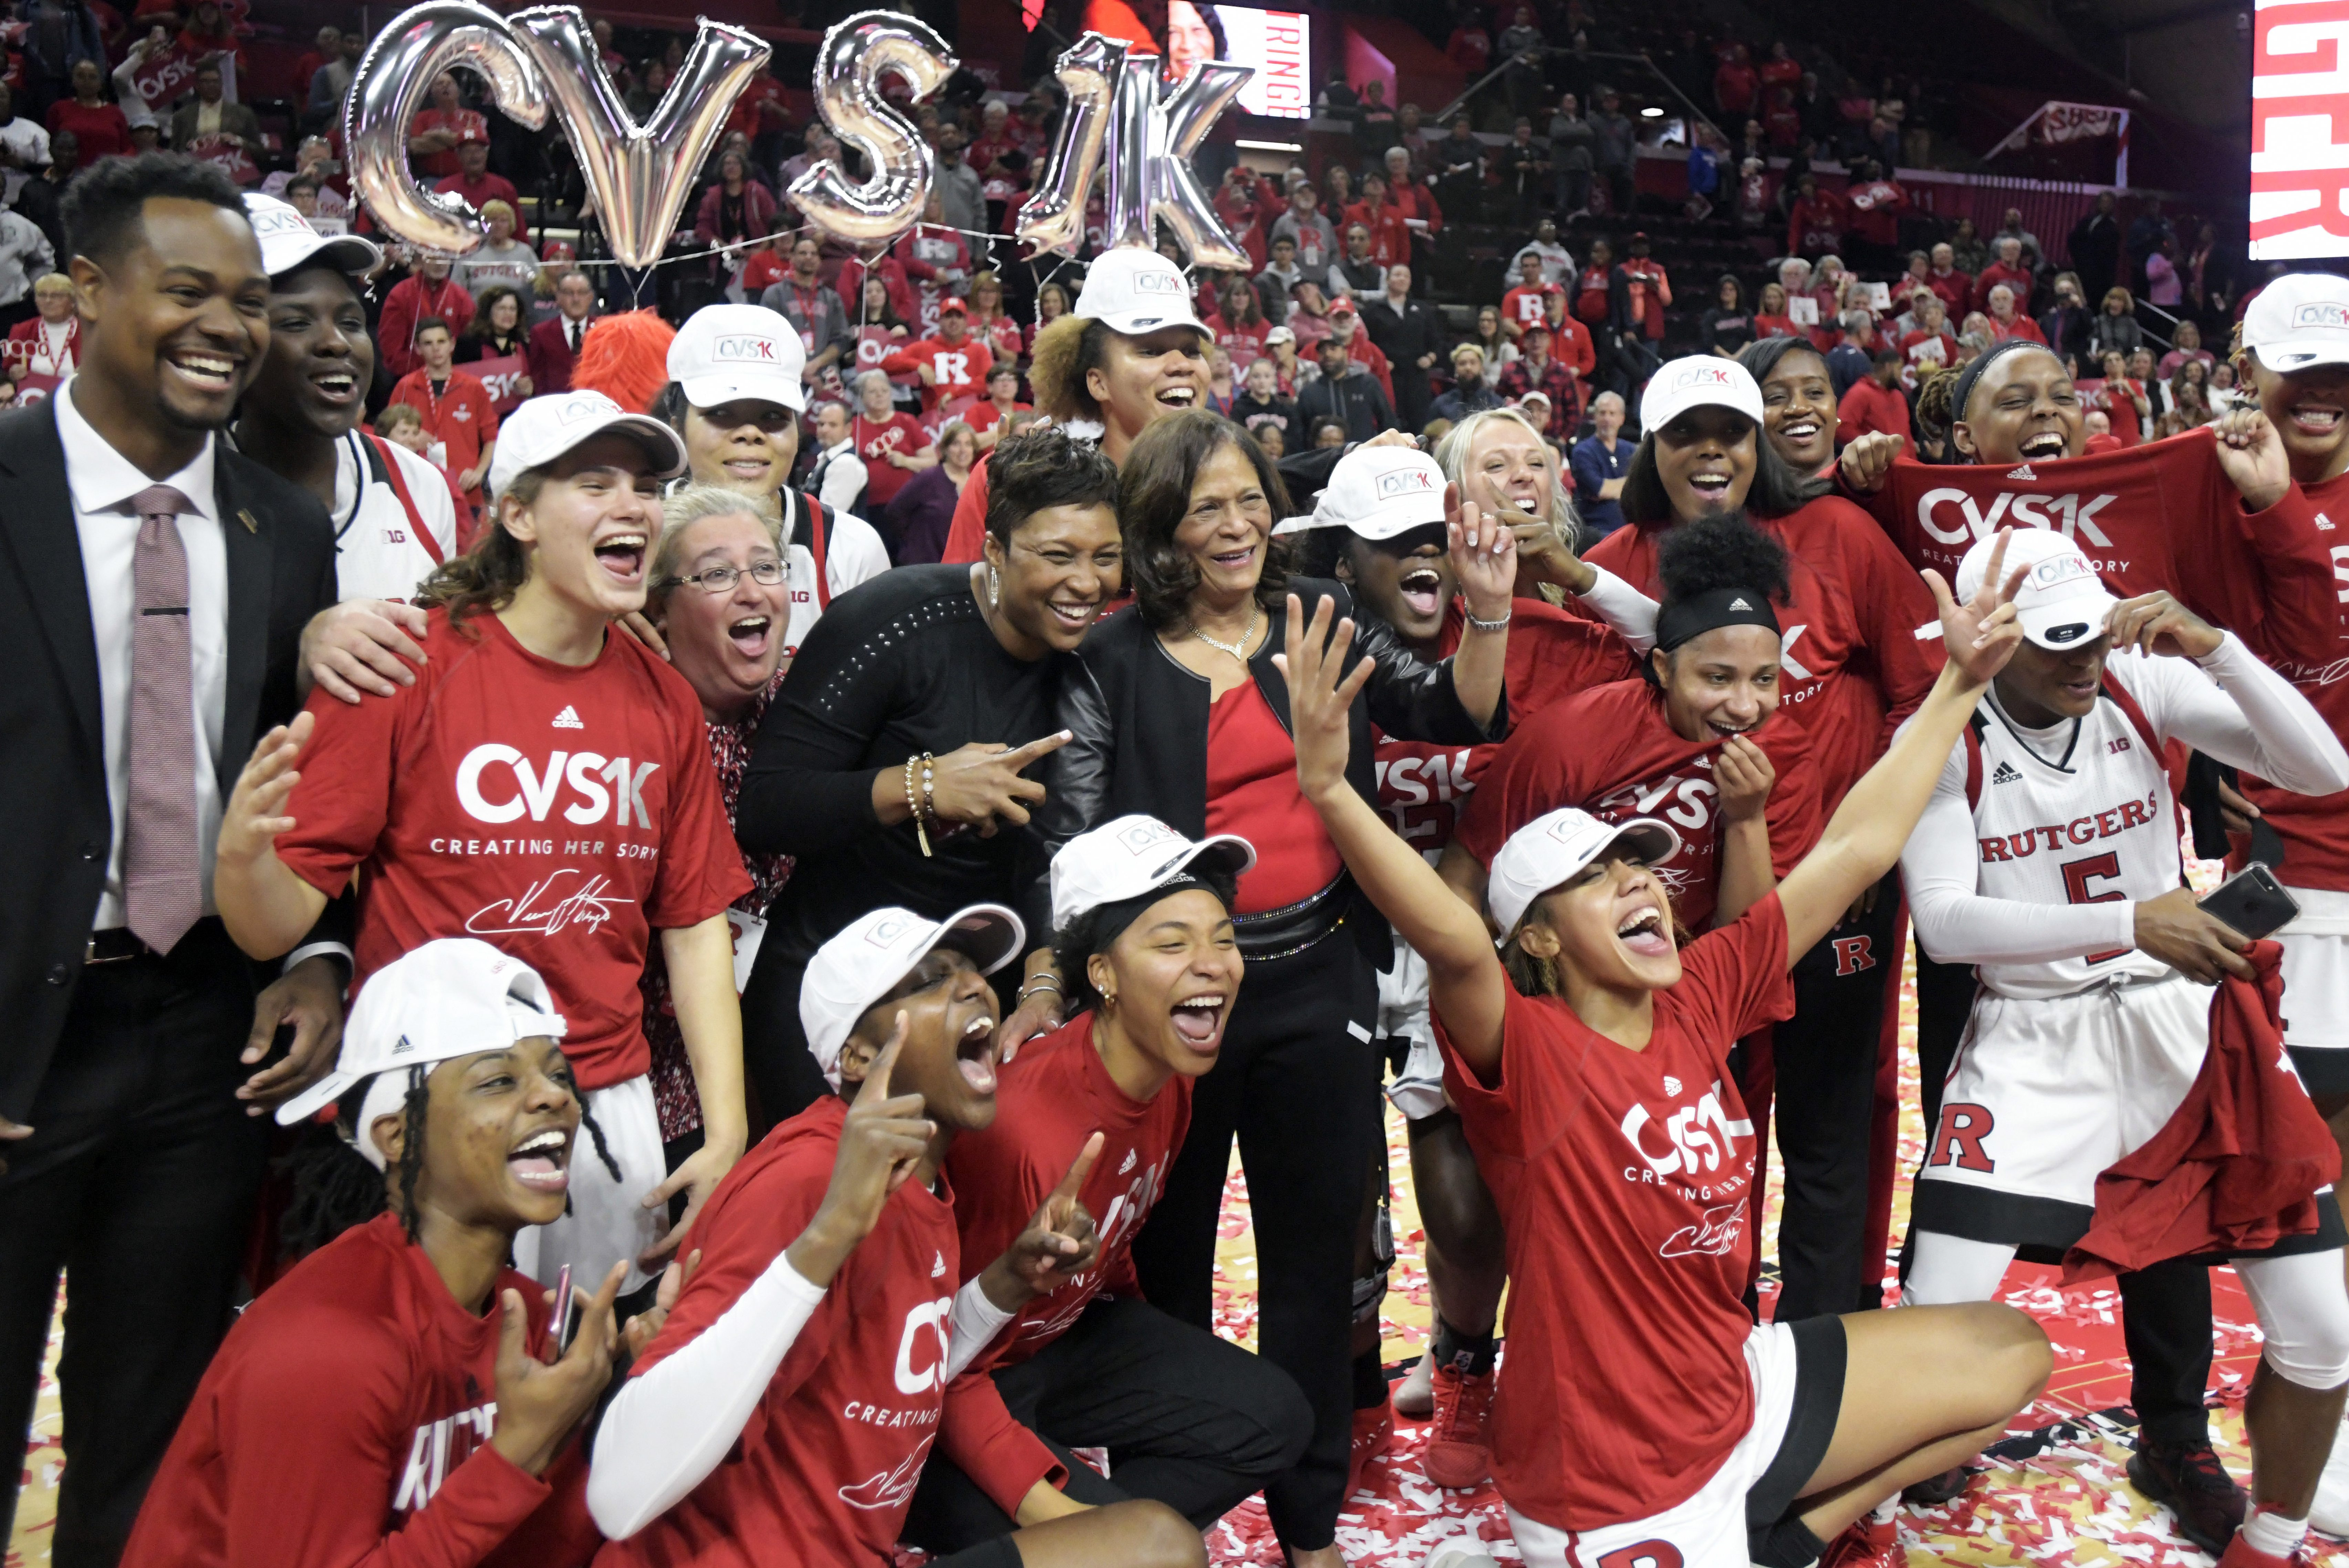 Rutgers coach C. Vivian Stringer, center, poses with her team after they defeated Central Connecticut for her 1,000th career win.